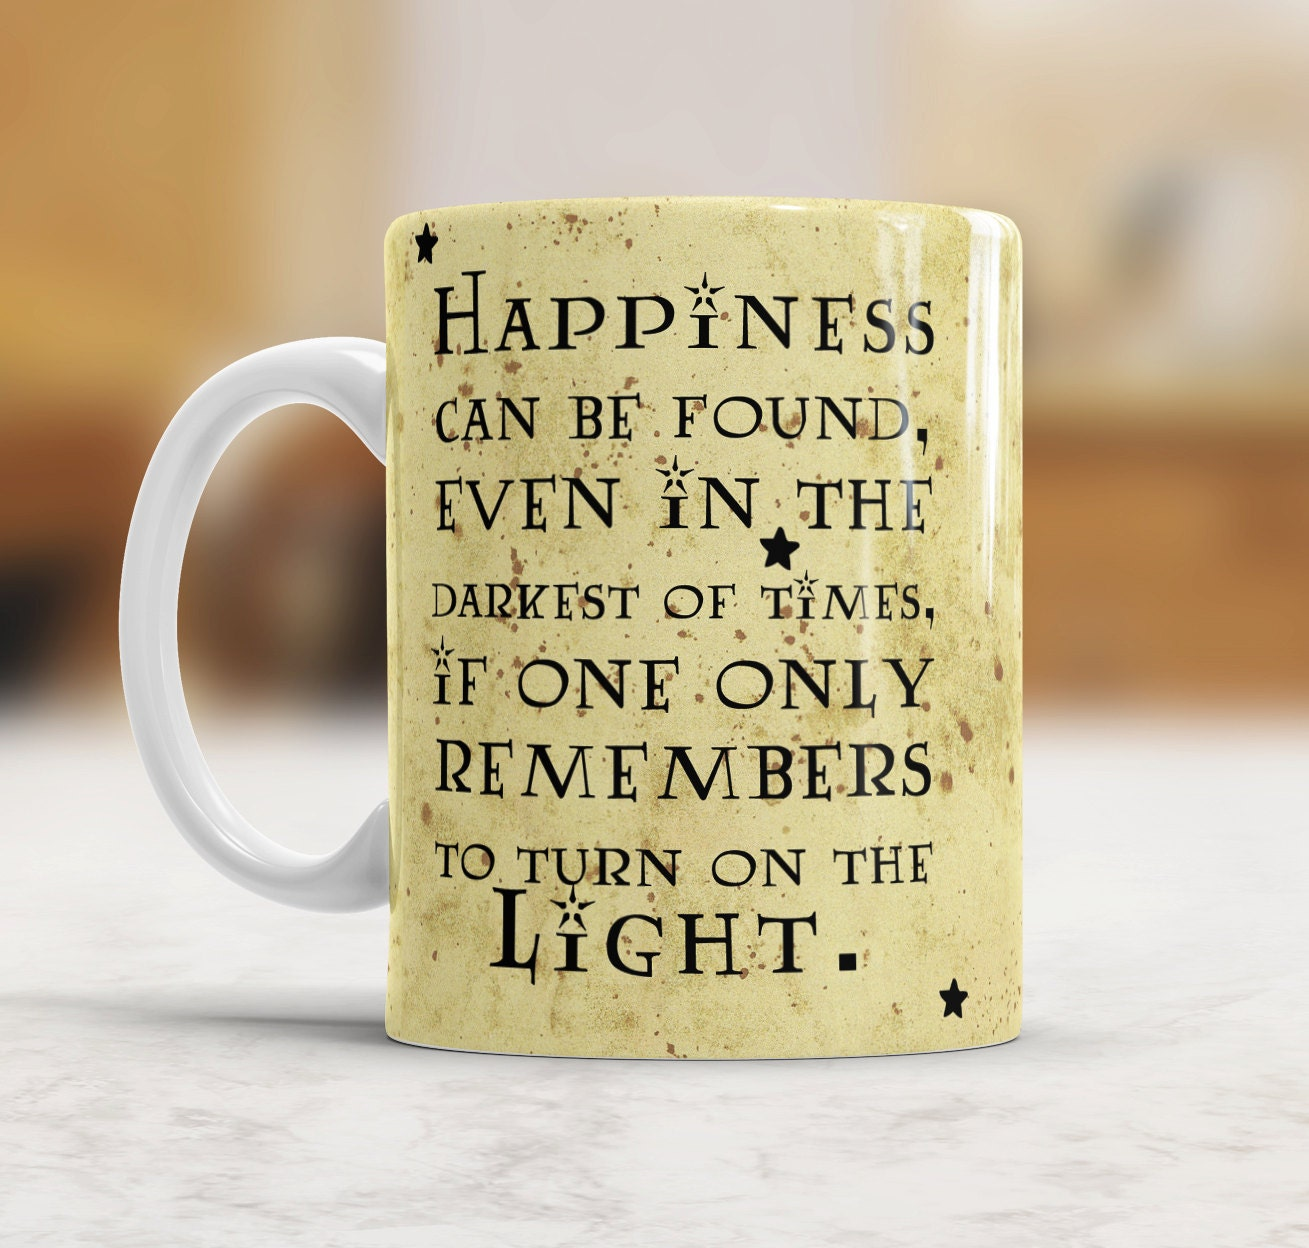 Happiness Can Be Found In The Darkest Of Times Quote: Happiness Can Be Found Even In The Darkest Of Times By